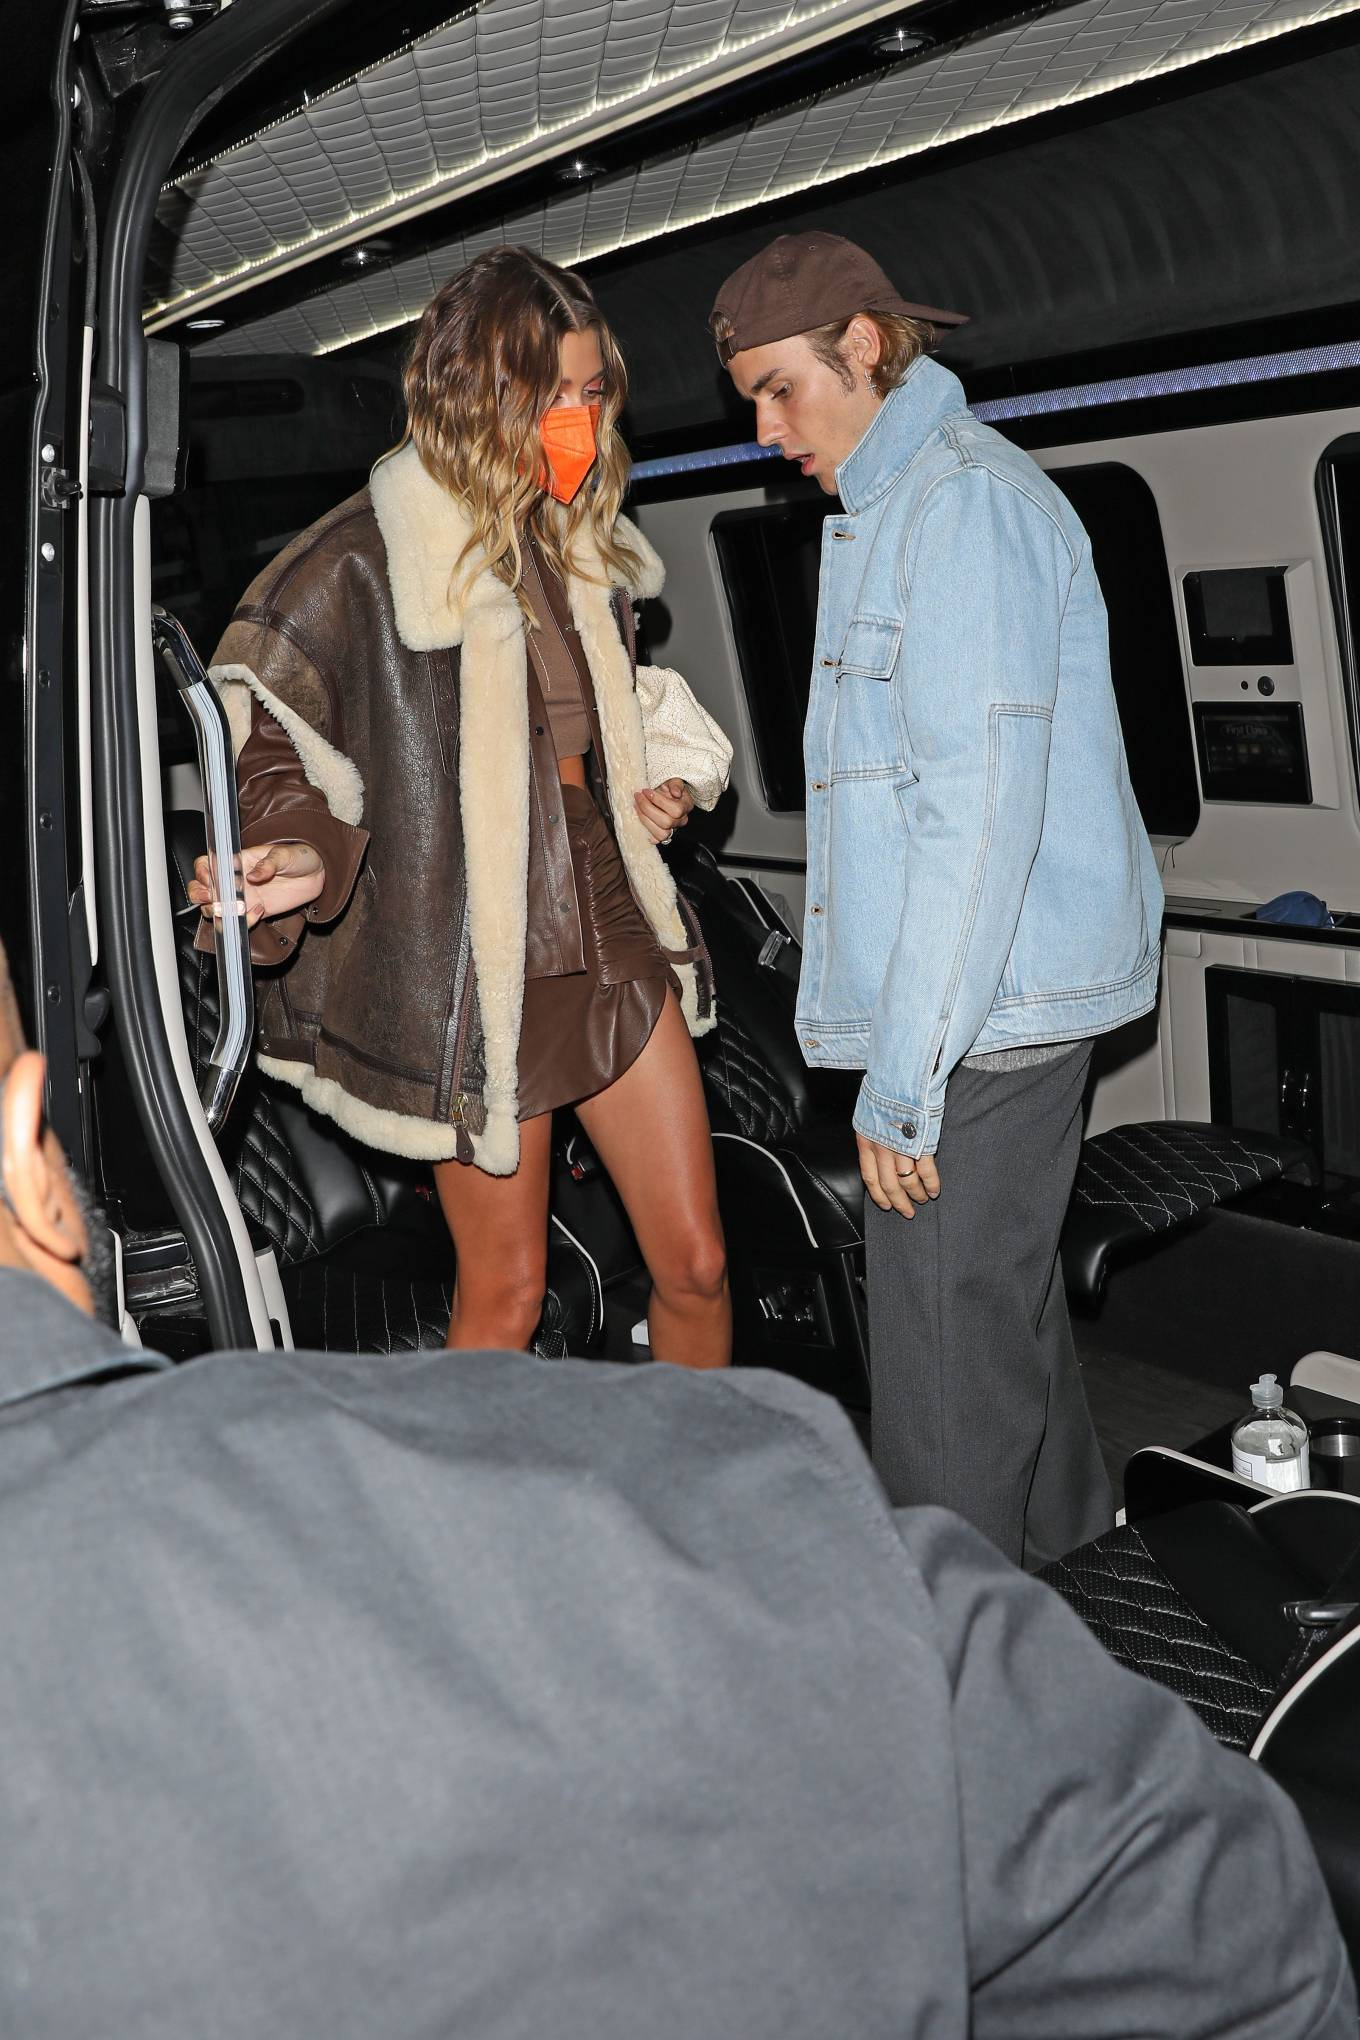 Hailey Baldwin donning a oversized brown strappy leather jacket with a fleece fabric and lapel collar